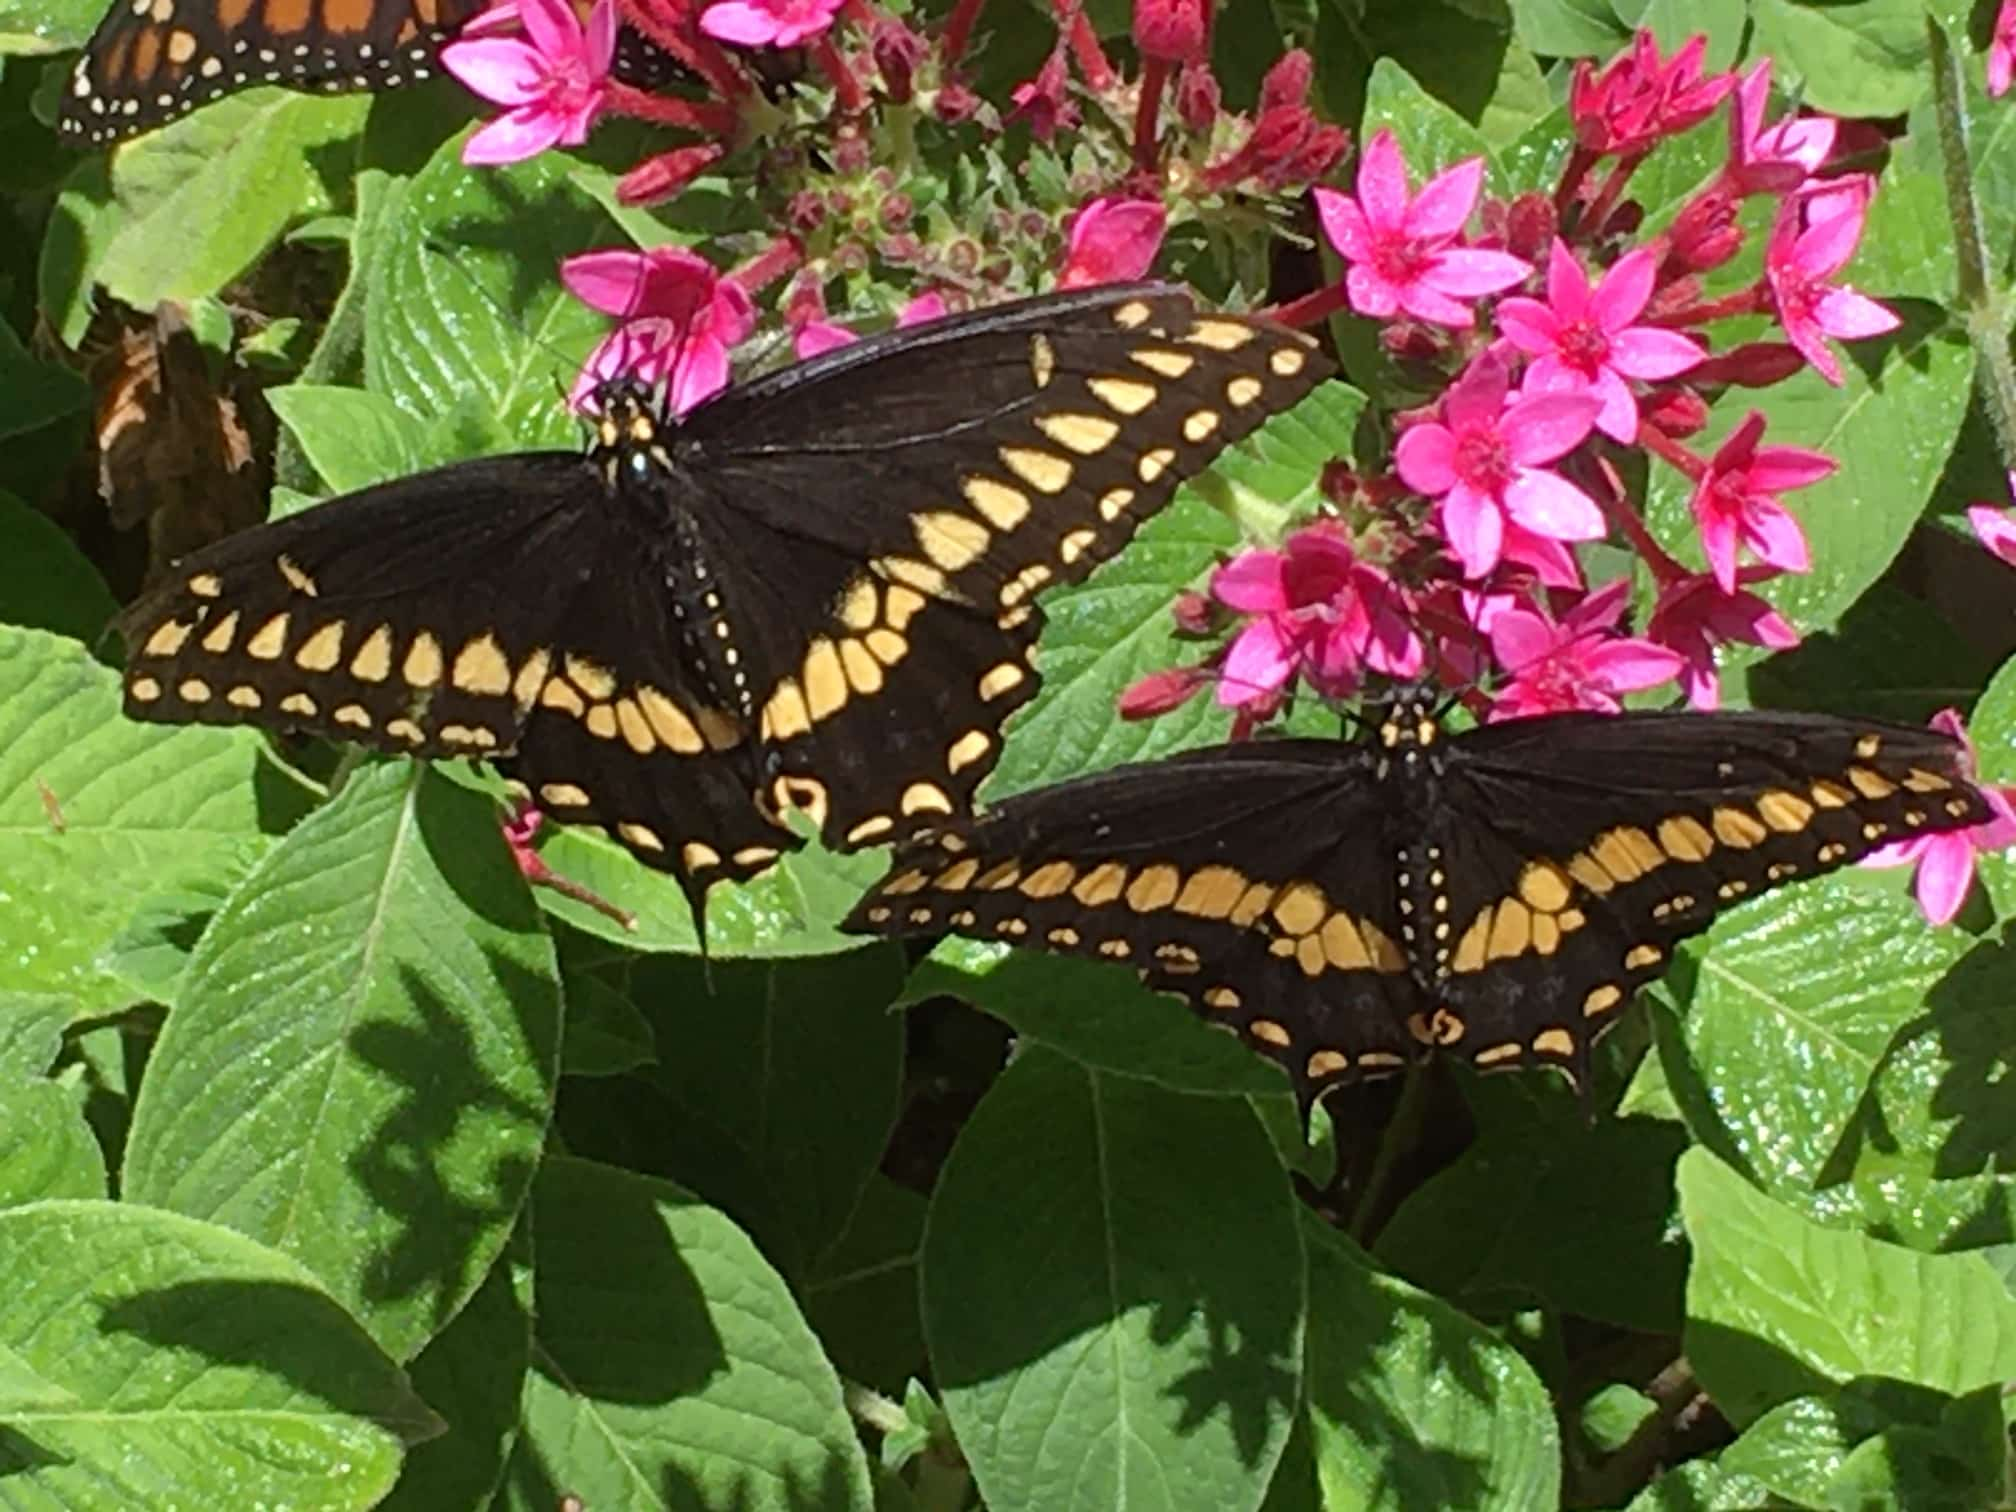 Black butterflies with a yellow strip on their bottom wings sit on green leaves with a pink flower.